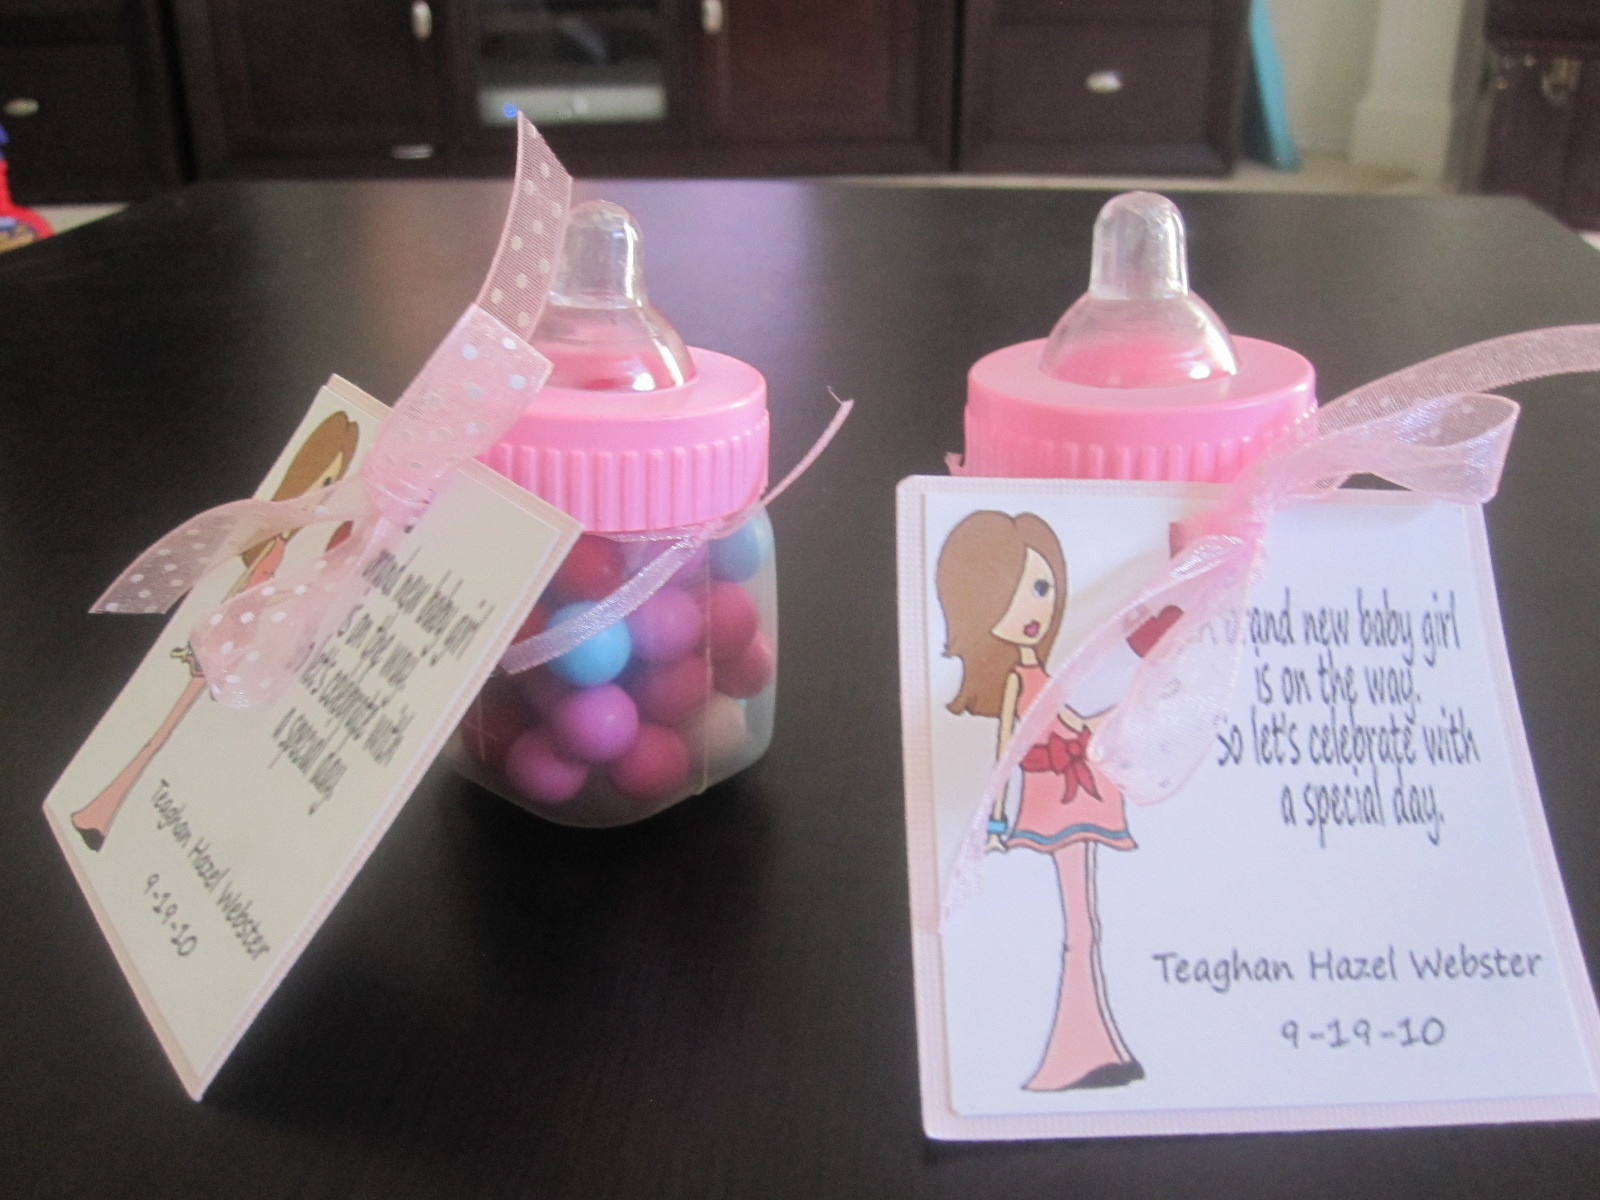 Thank You Gift Ideas For Baby Shower  Baby Shower Thank You Gifts